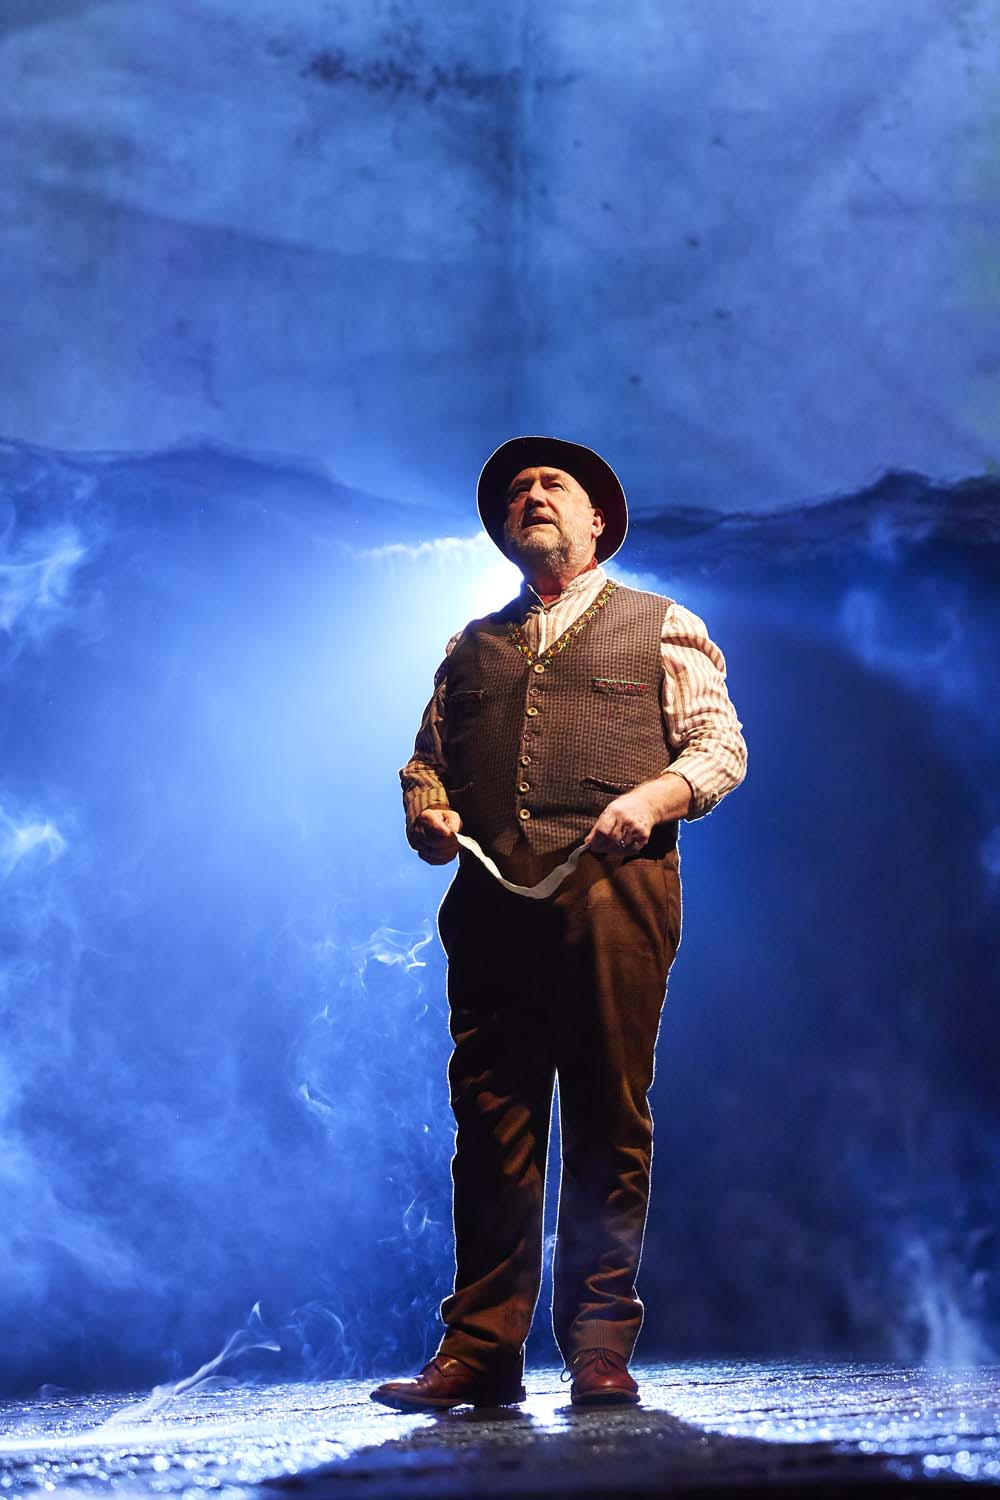 Bob Fox as The Song Man in War Horse Photos by Brinkhoff & Mo êgenburg